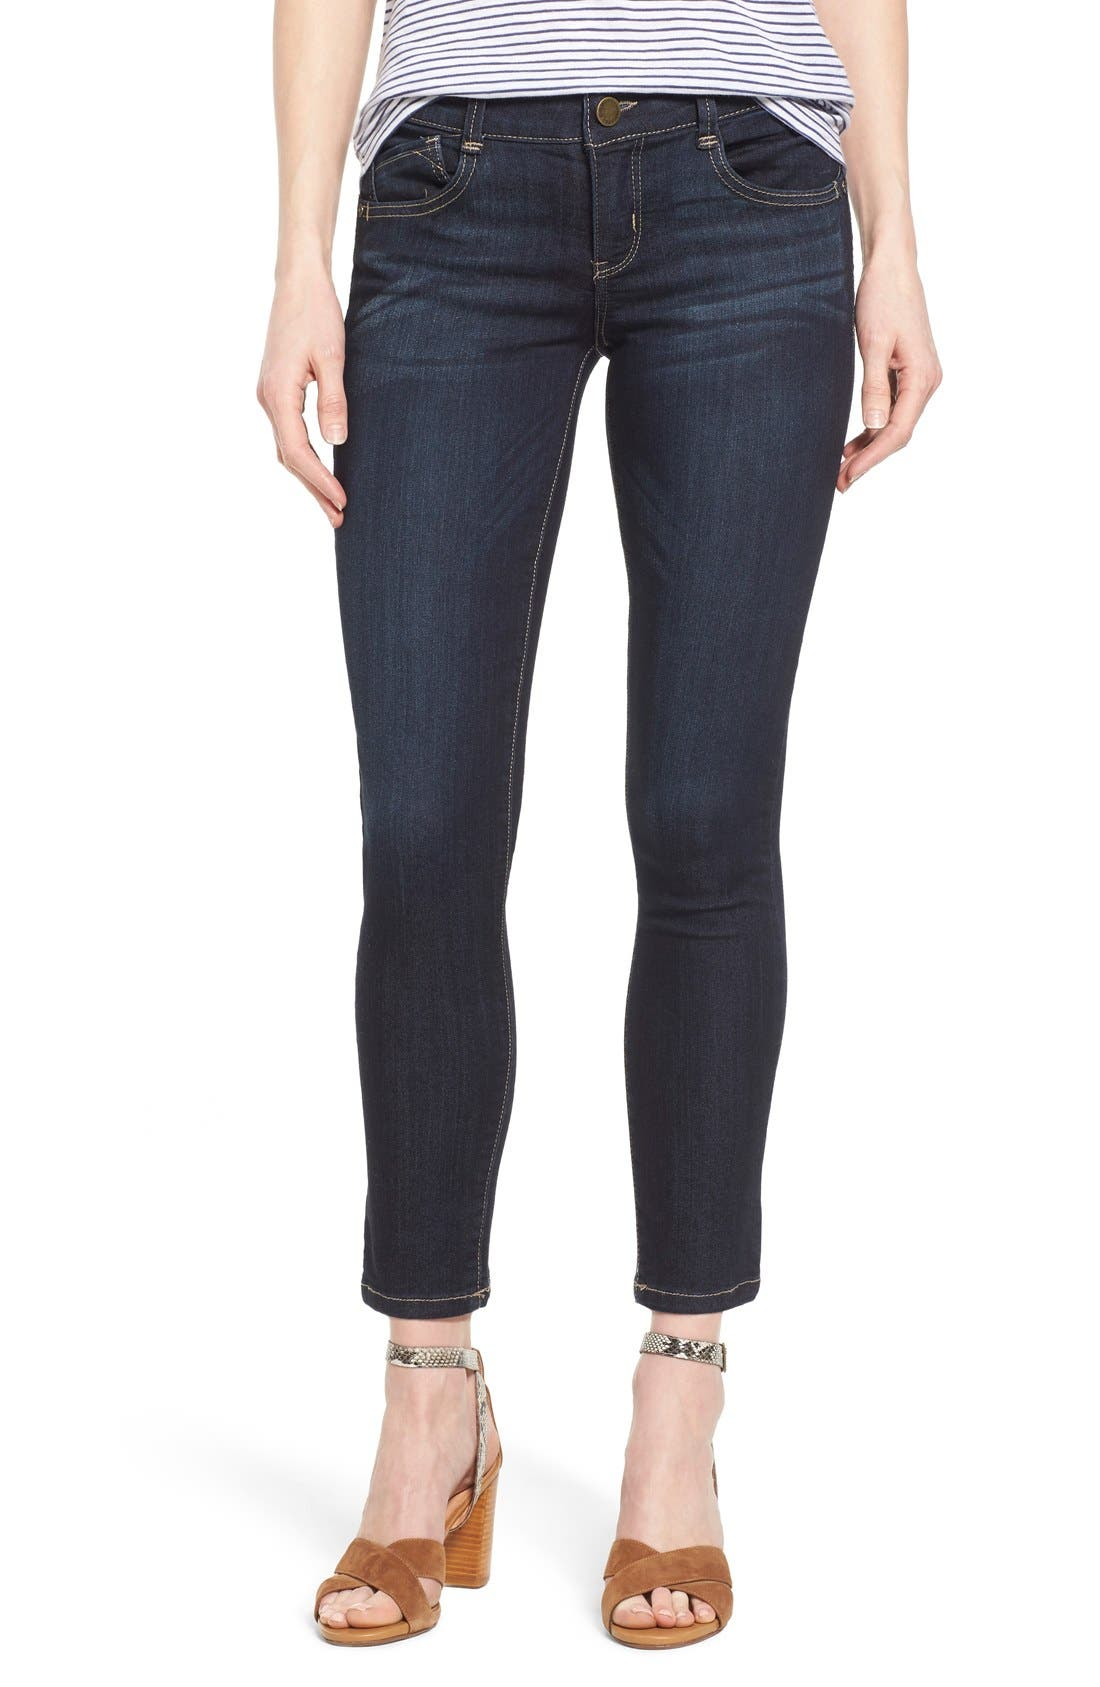 Main Image - Wit & Wisdom 'Ab Solution' Stretch Ankle Skinny Jeans (Regular & Petite) (Nordstrom Exclusive)